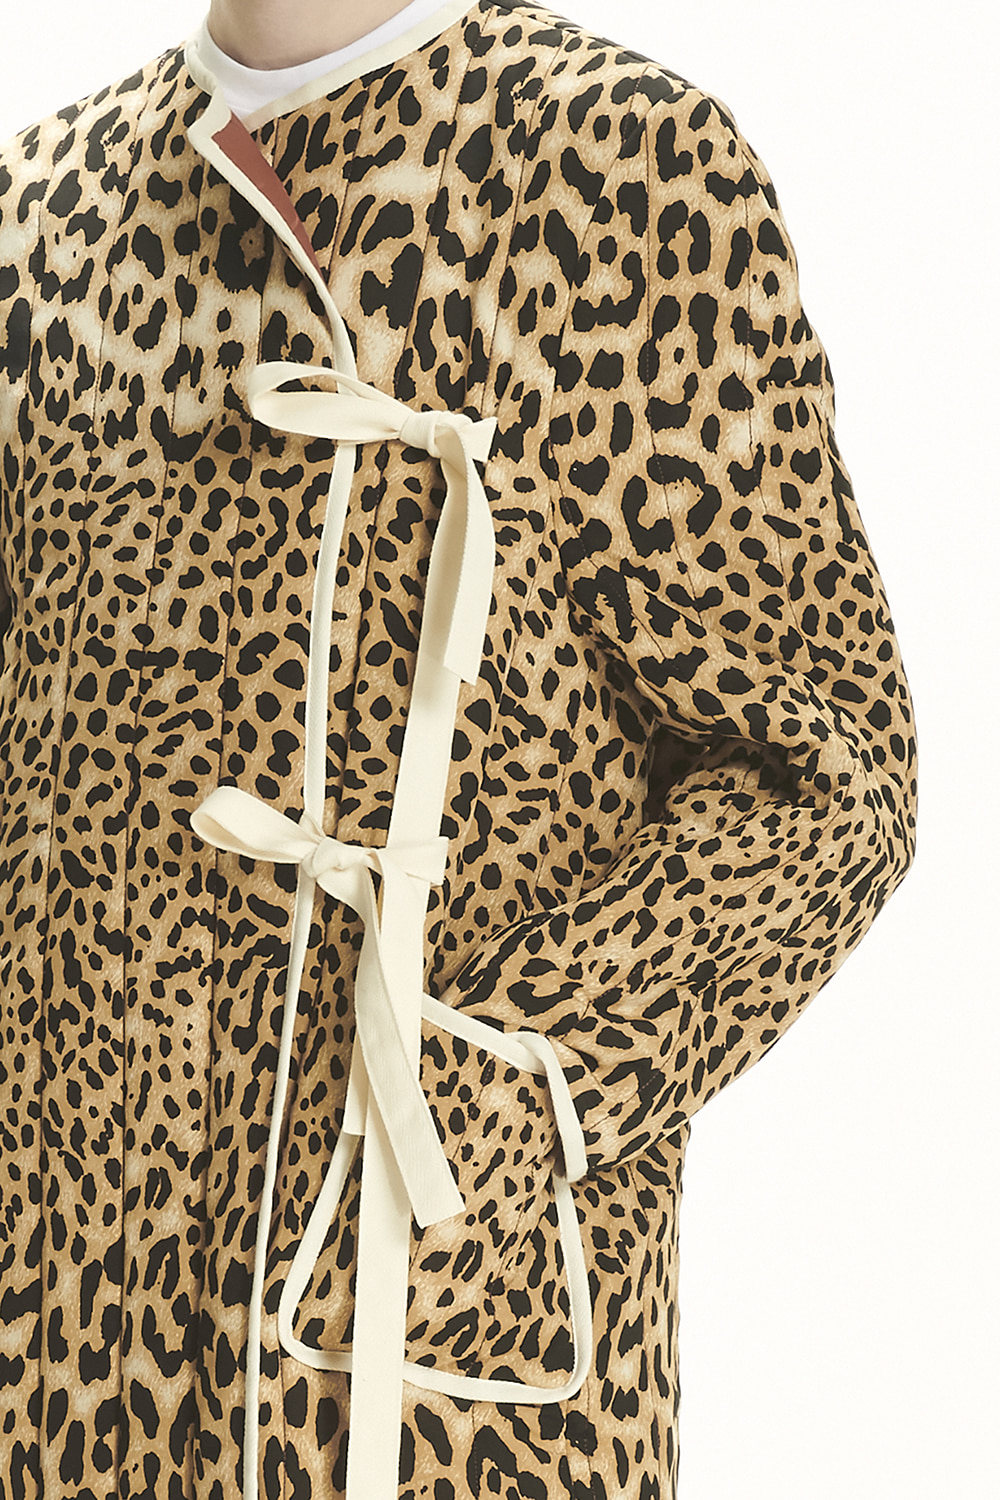 PS21 LEOPARD QUILTED COAT